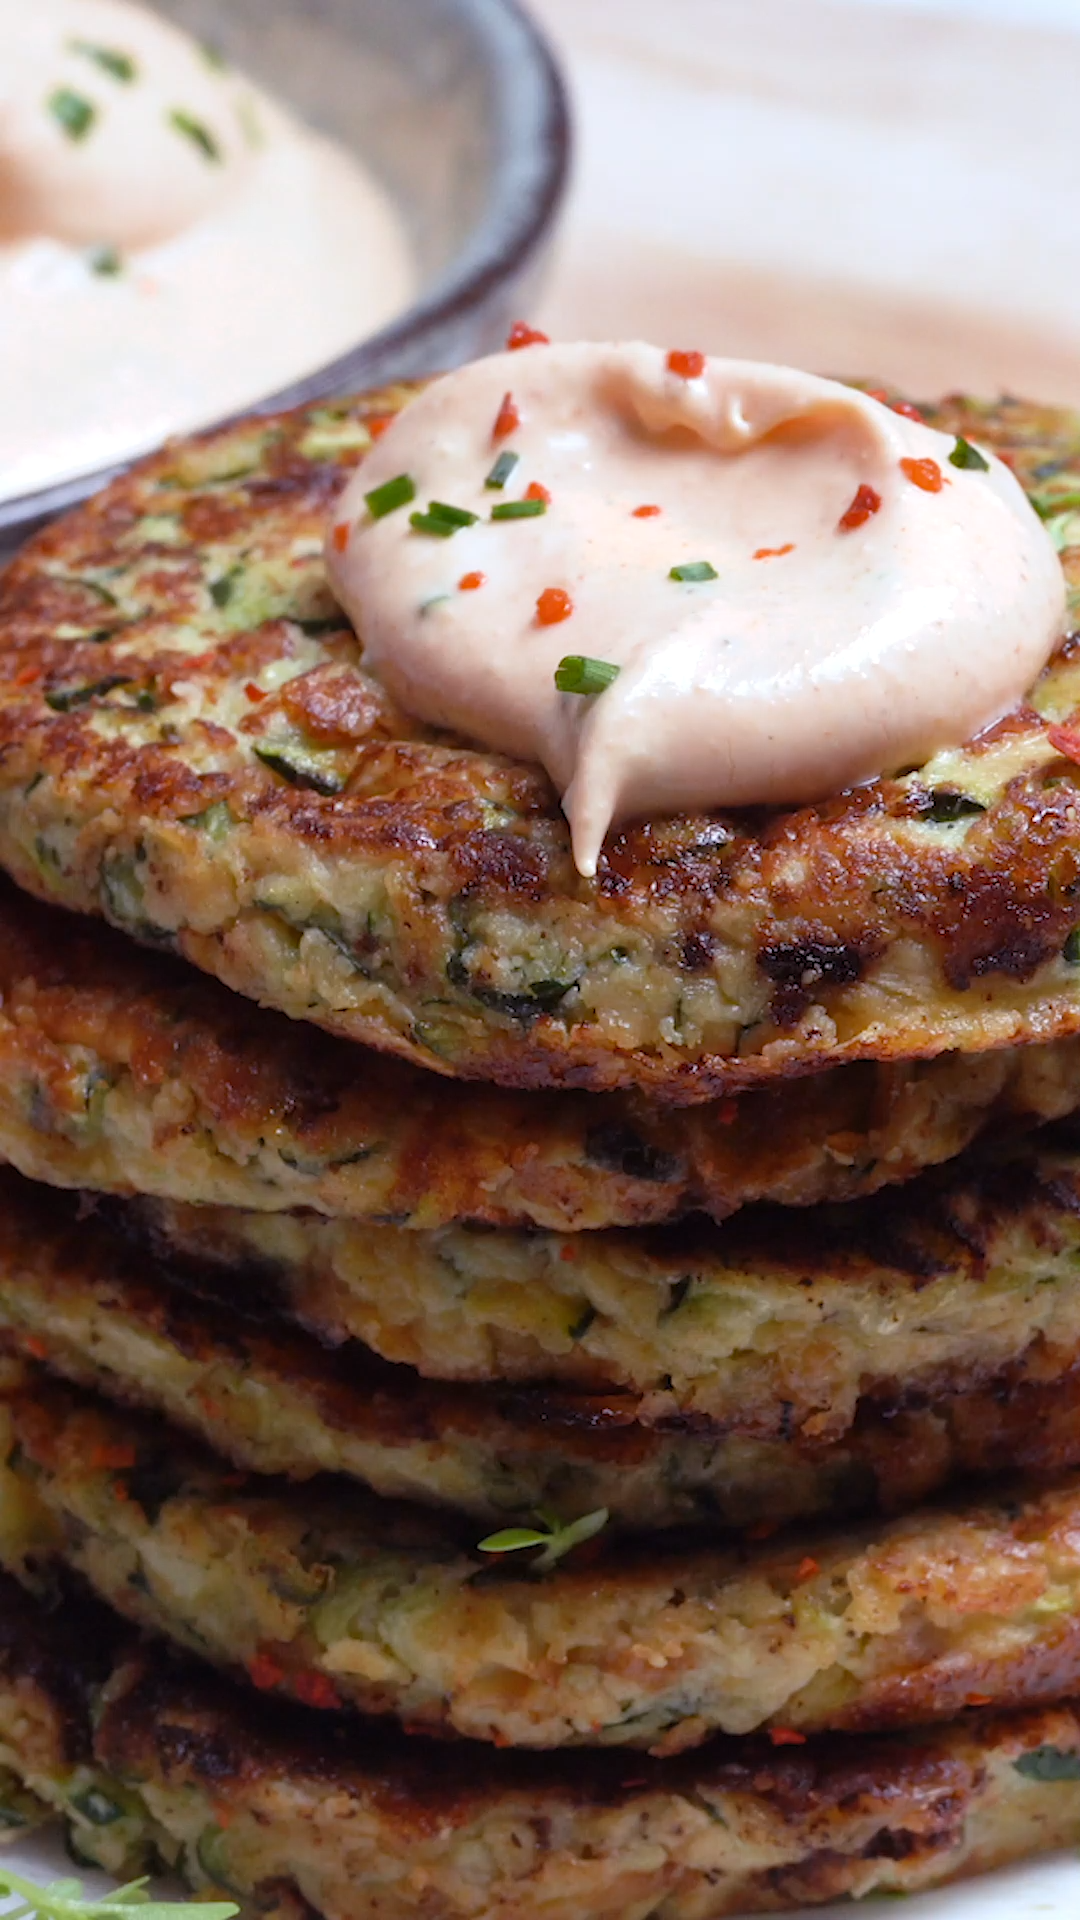 Hey foodies, Who loves fritters?! 🙌  These Zucchini Fritters hit all the right spots😋 ✅super easy to make  ✅Spicy/Sriracha Ranch Dip ✅Keto + low carb Let the Zucchini Fritters madness begin 💥